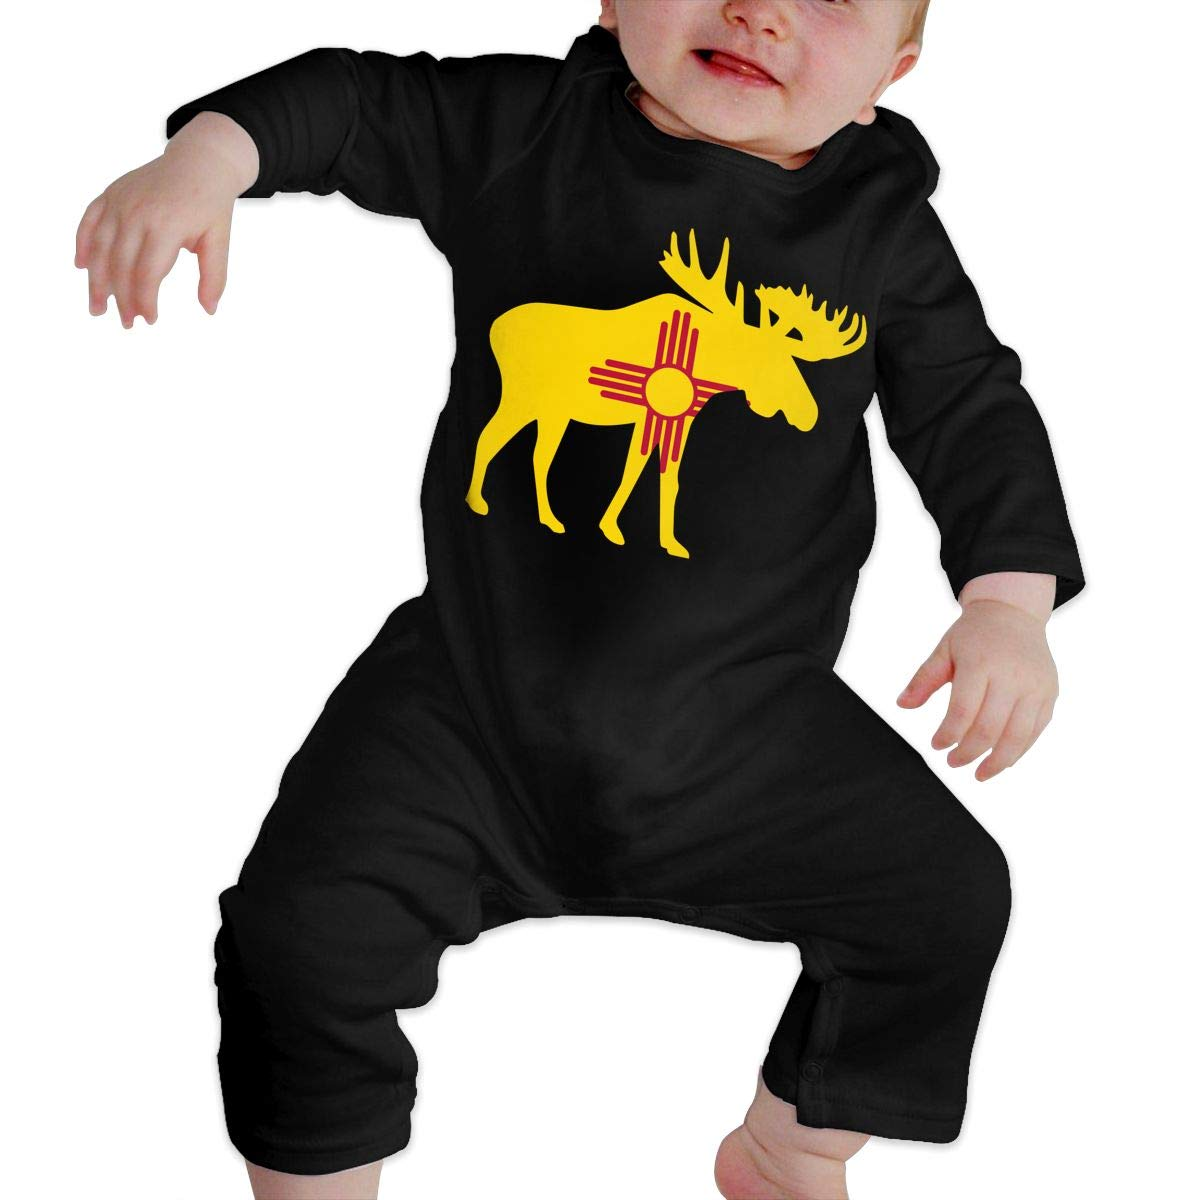 Cute New Mexico Moose Playsuit U99oi-9 Long Sleeve Cotton Rompers for Baby Girls Boys